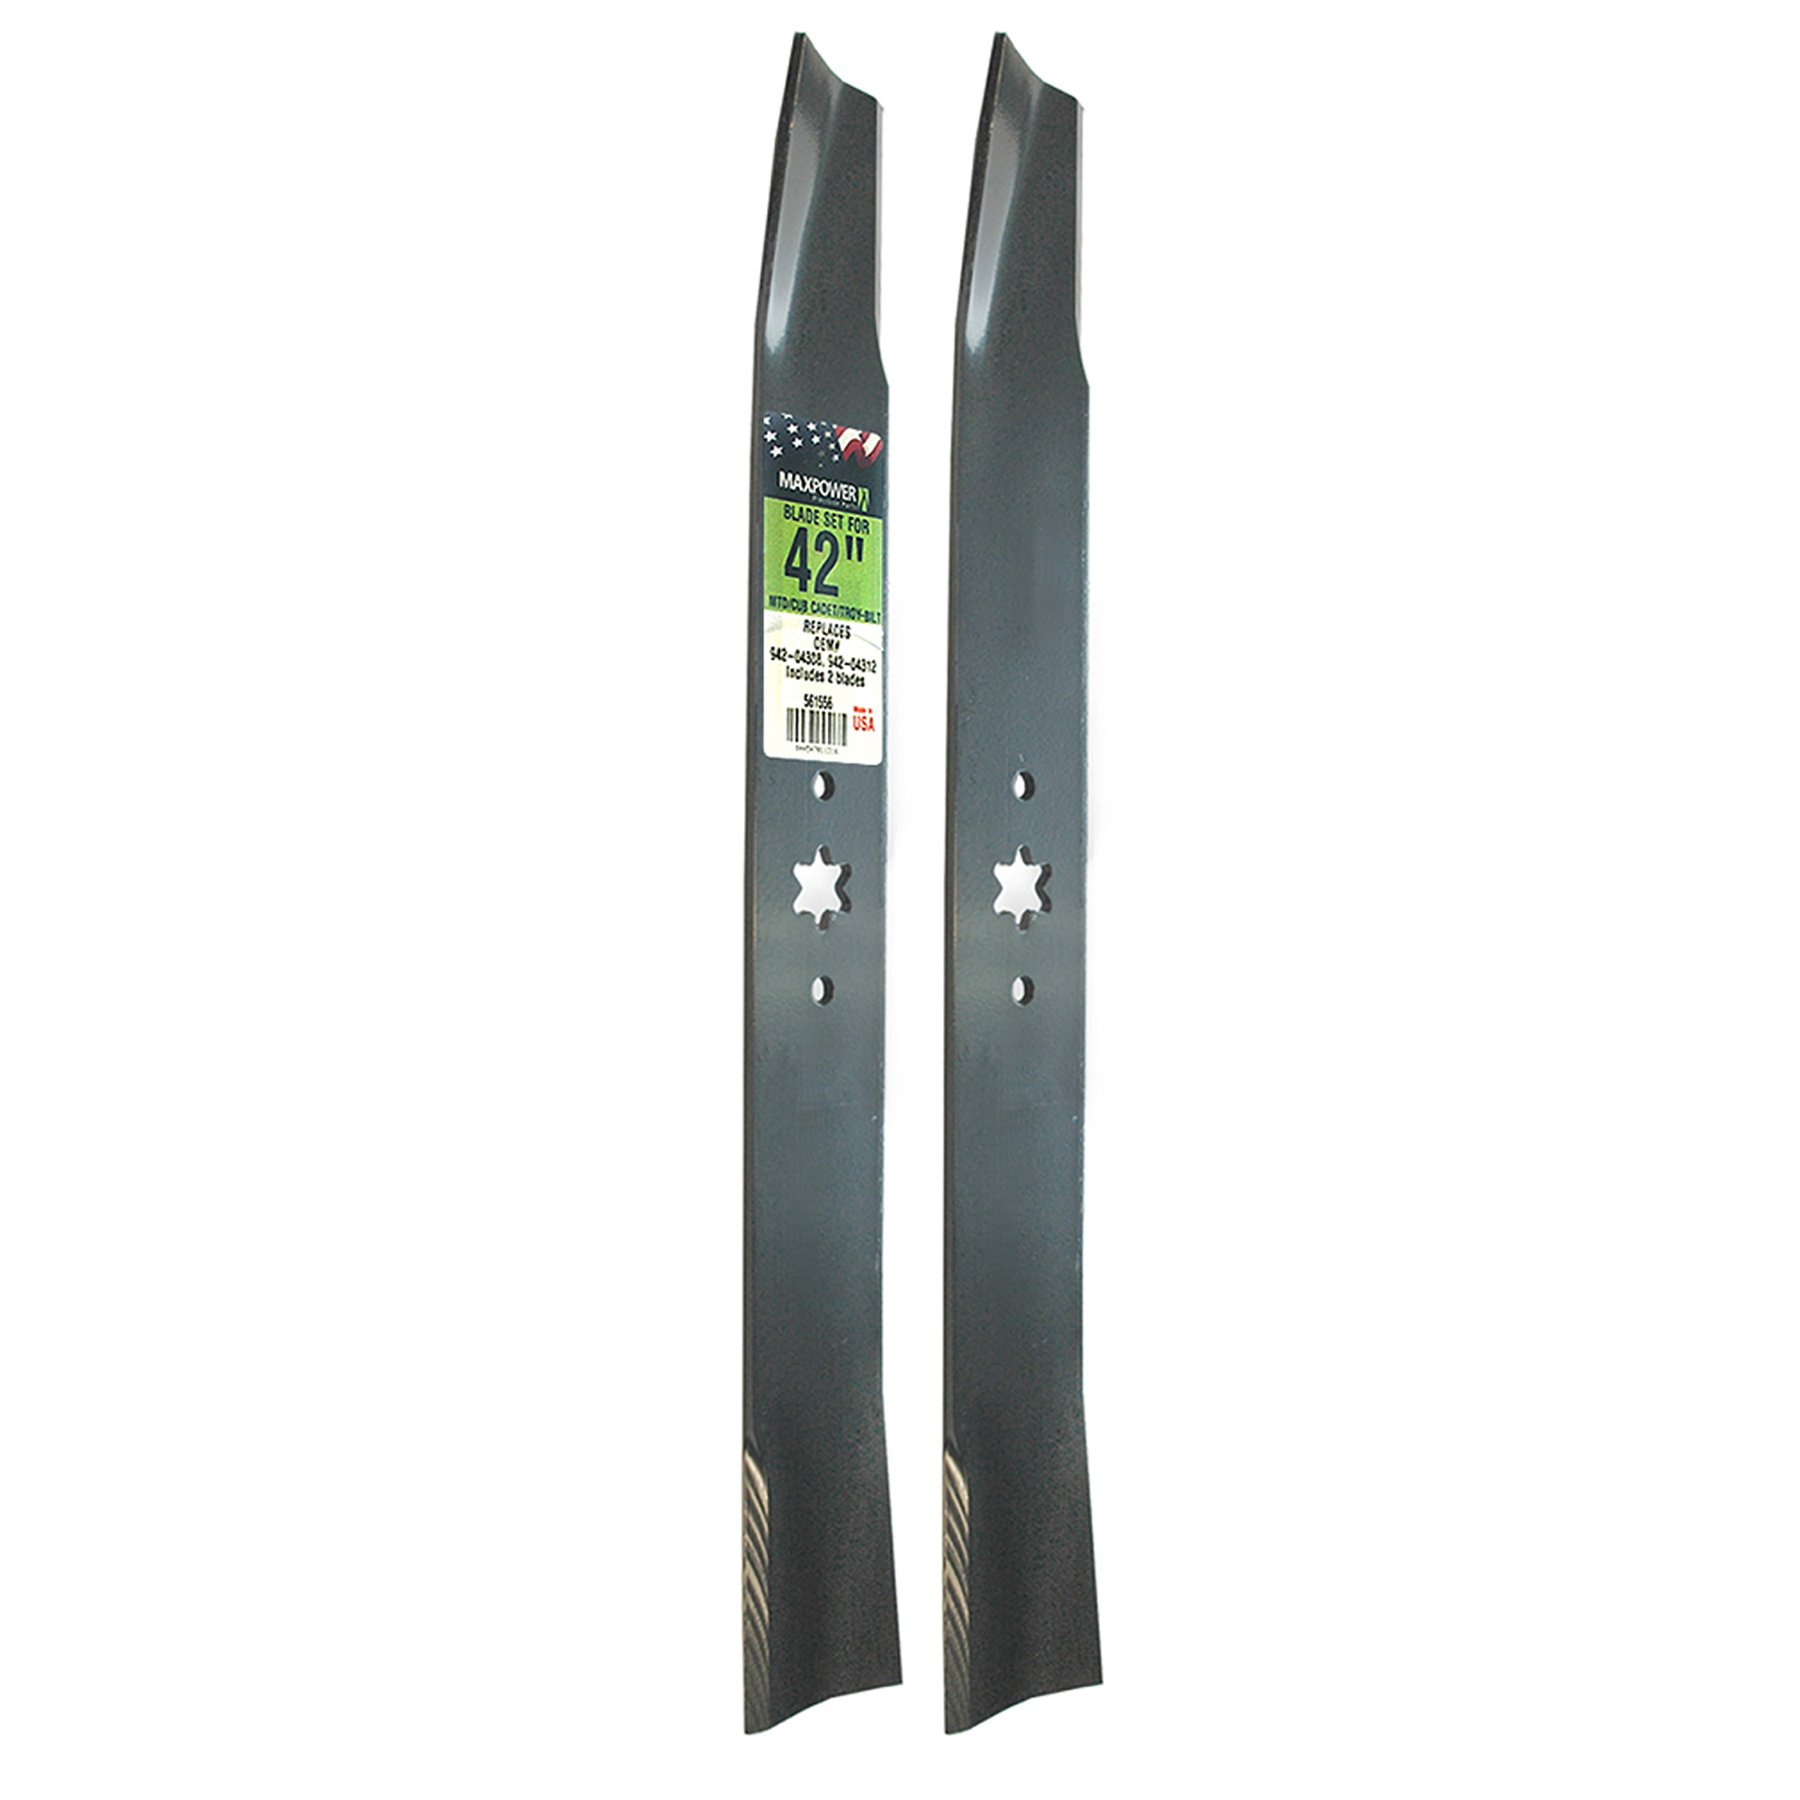 Maxpower 561556 (2) Blade Set for 42'' Cut MTD, Cub Cadet, and Troy-Bilt Replaces OEM No. 742-04308, 742-04312, 942-04308, 942-04312, 119-8456 by Maxpower